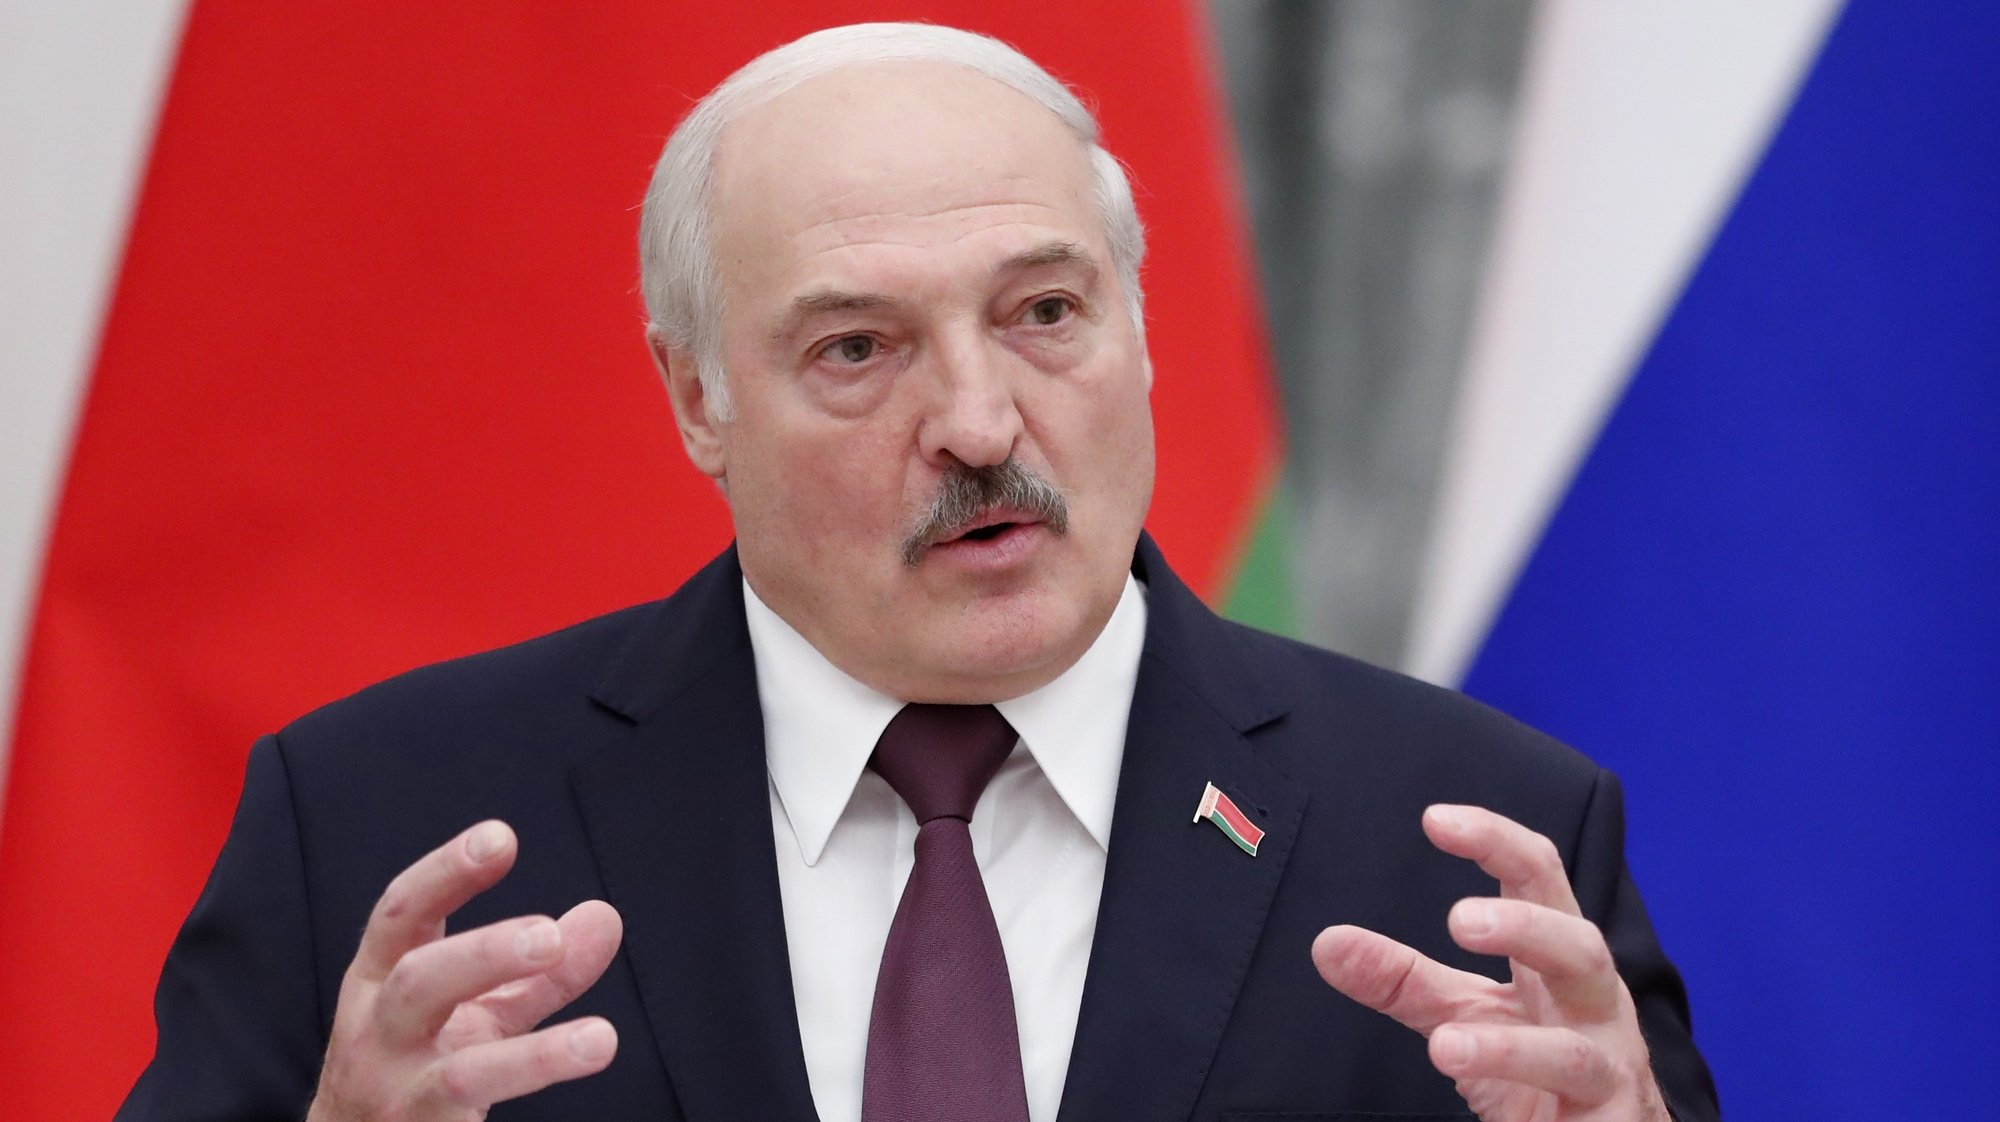 epa09458453 Belarusian President Alexander Lukashenko speaks during a news conference following talks with his Russian counterpart Vladimir Putin at the Kremlin in Moscow, Russia, 09 September 2021. Belarusian President is on a working visit in Moscow.  EPA/SHAMIL ZHUMATOV / POOL